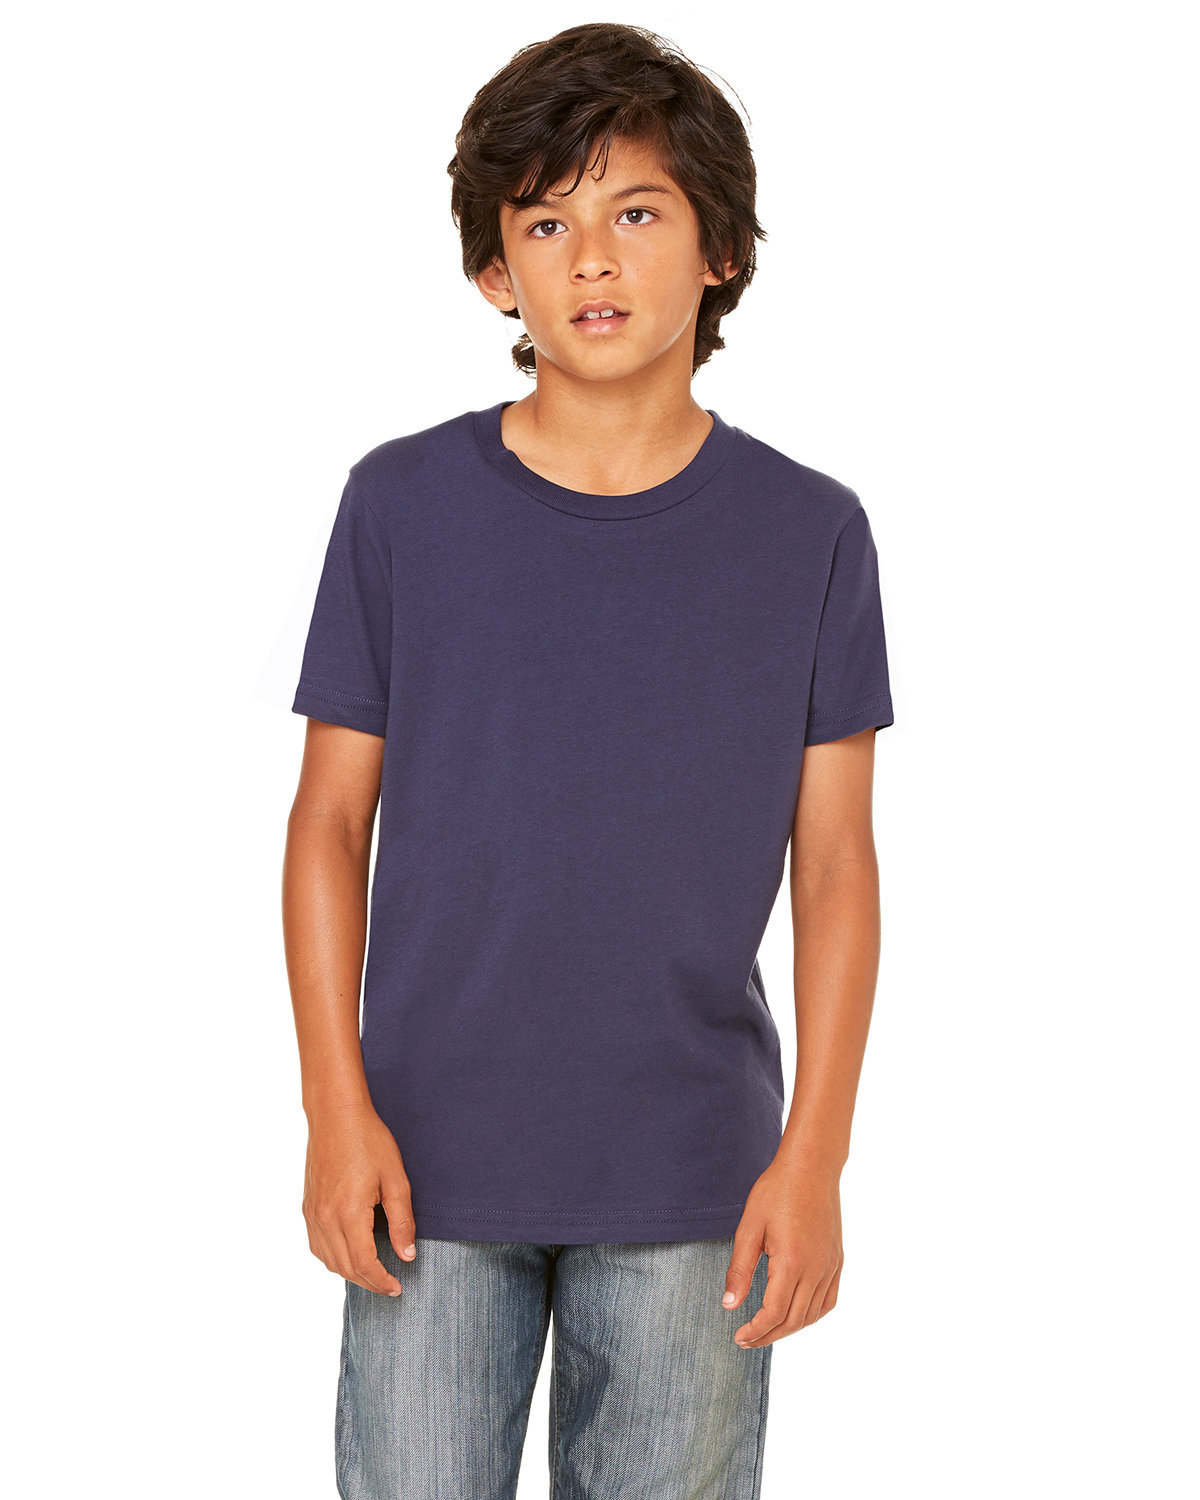 Bella + Canvas Youth Jersey T-Shirt NAVY